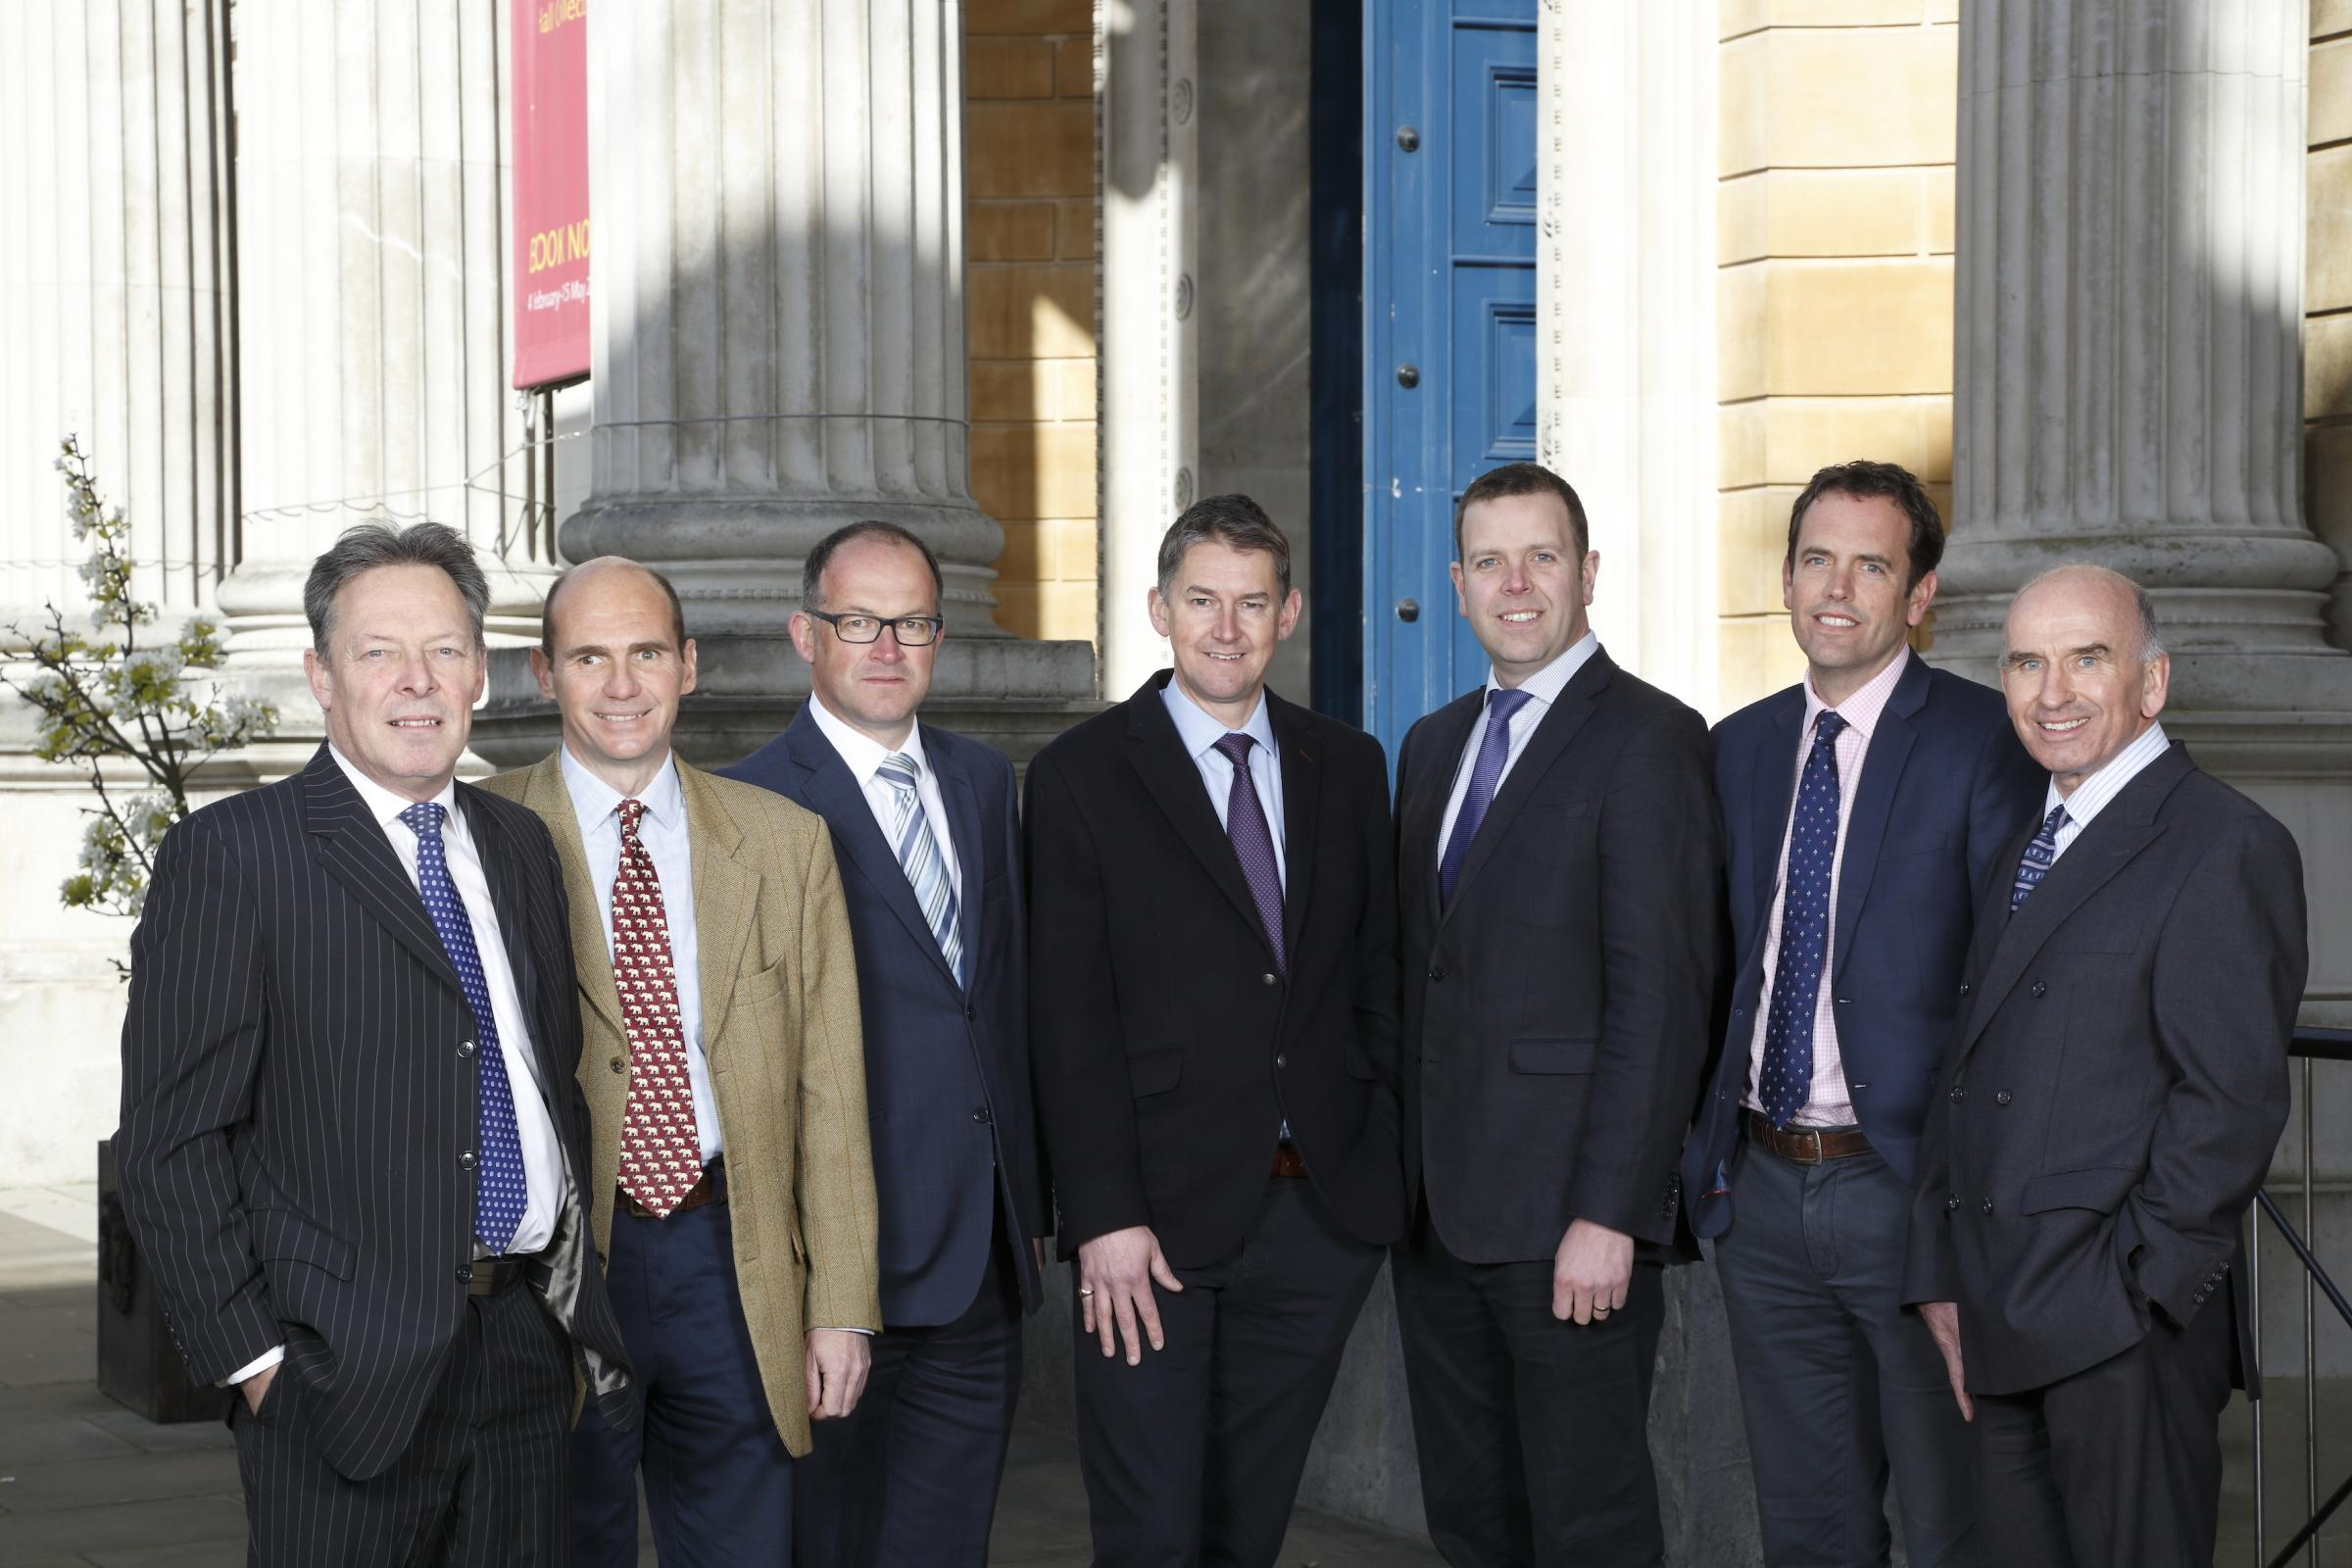 The team at commercial property specialists VSL & Partners. Picture supplied by VSL & Partners